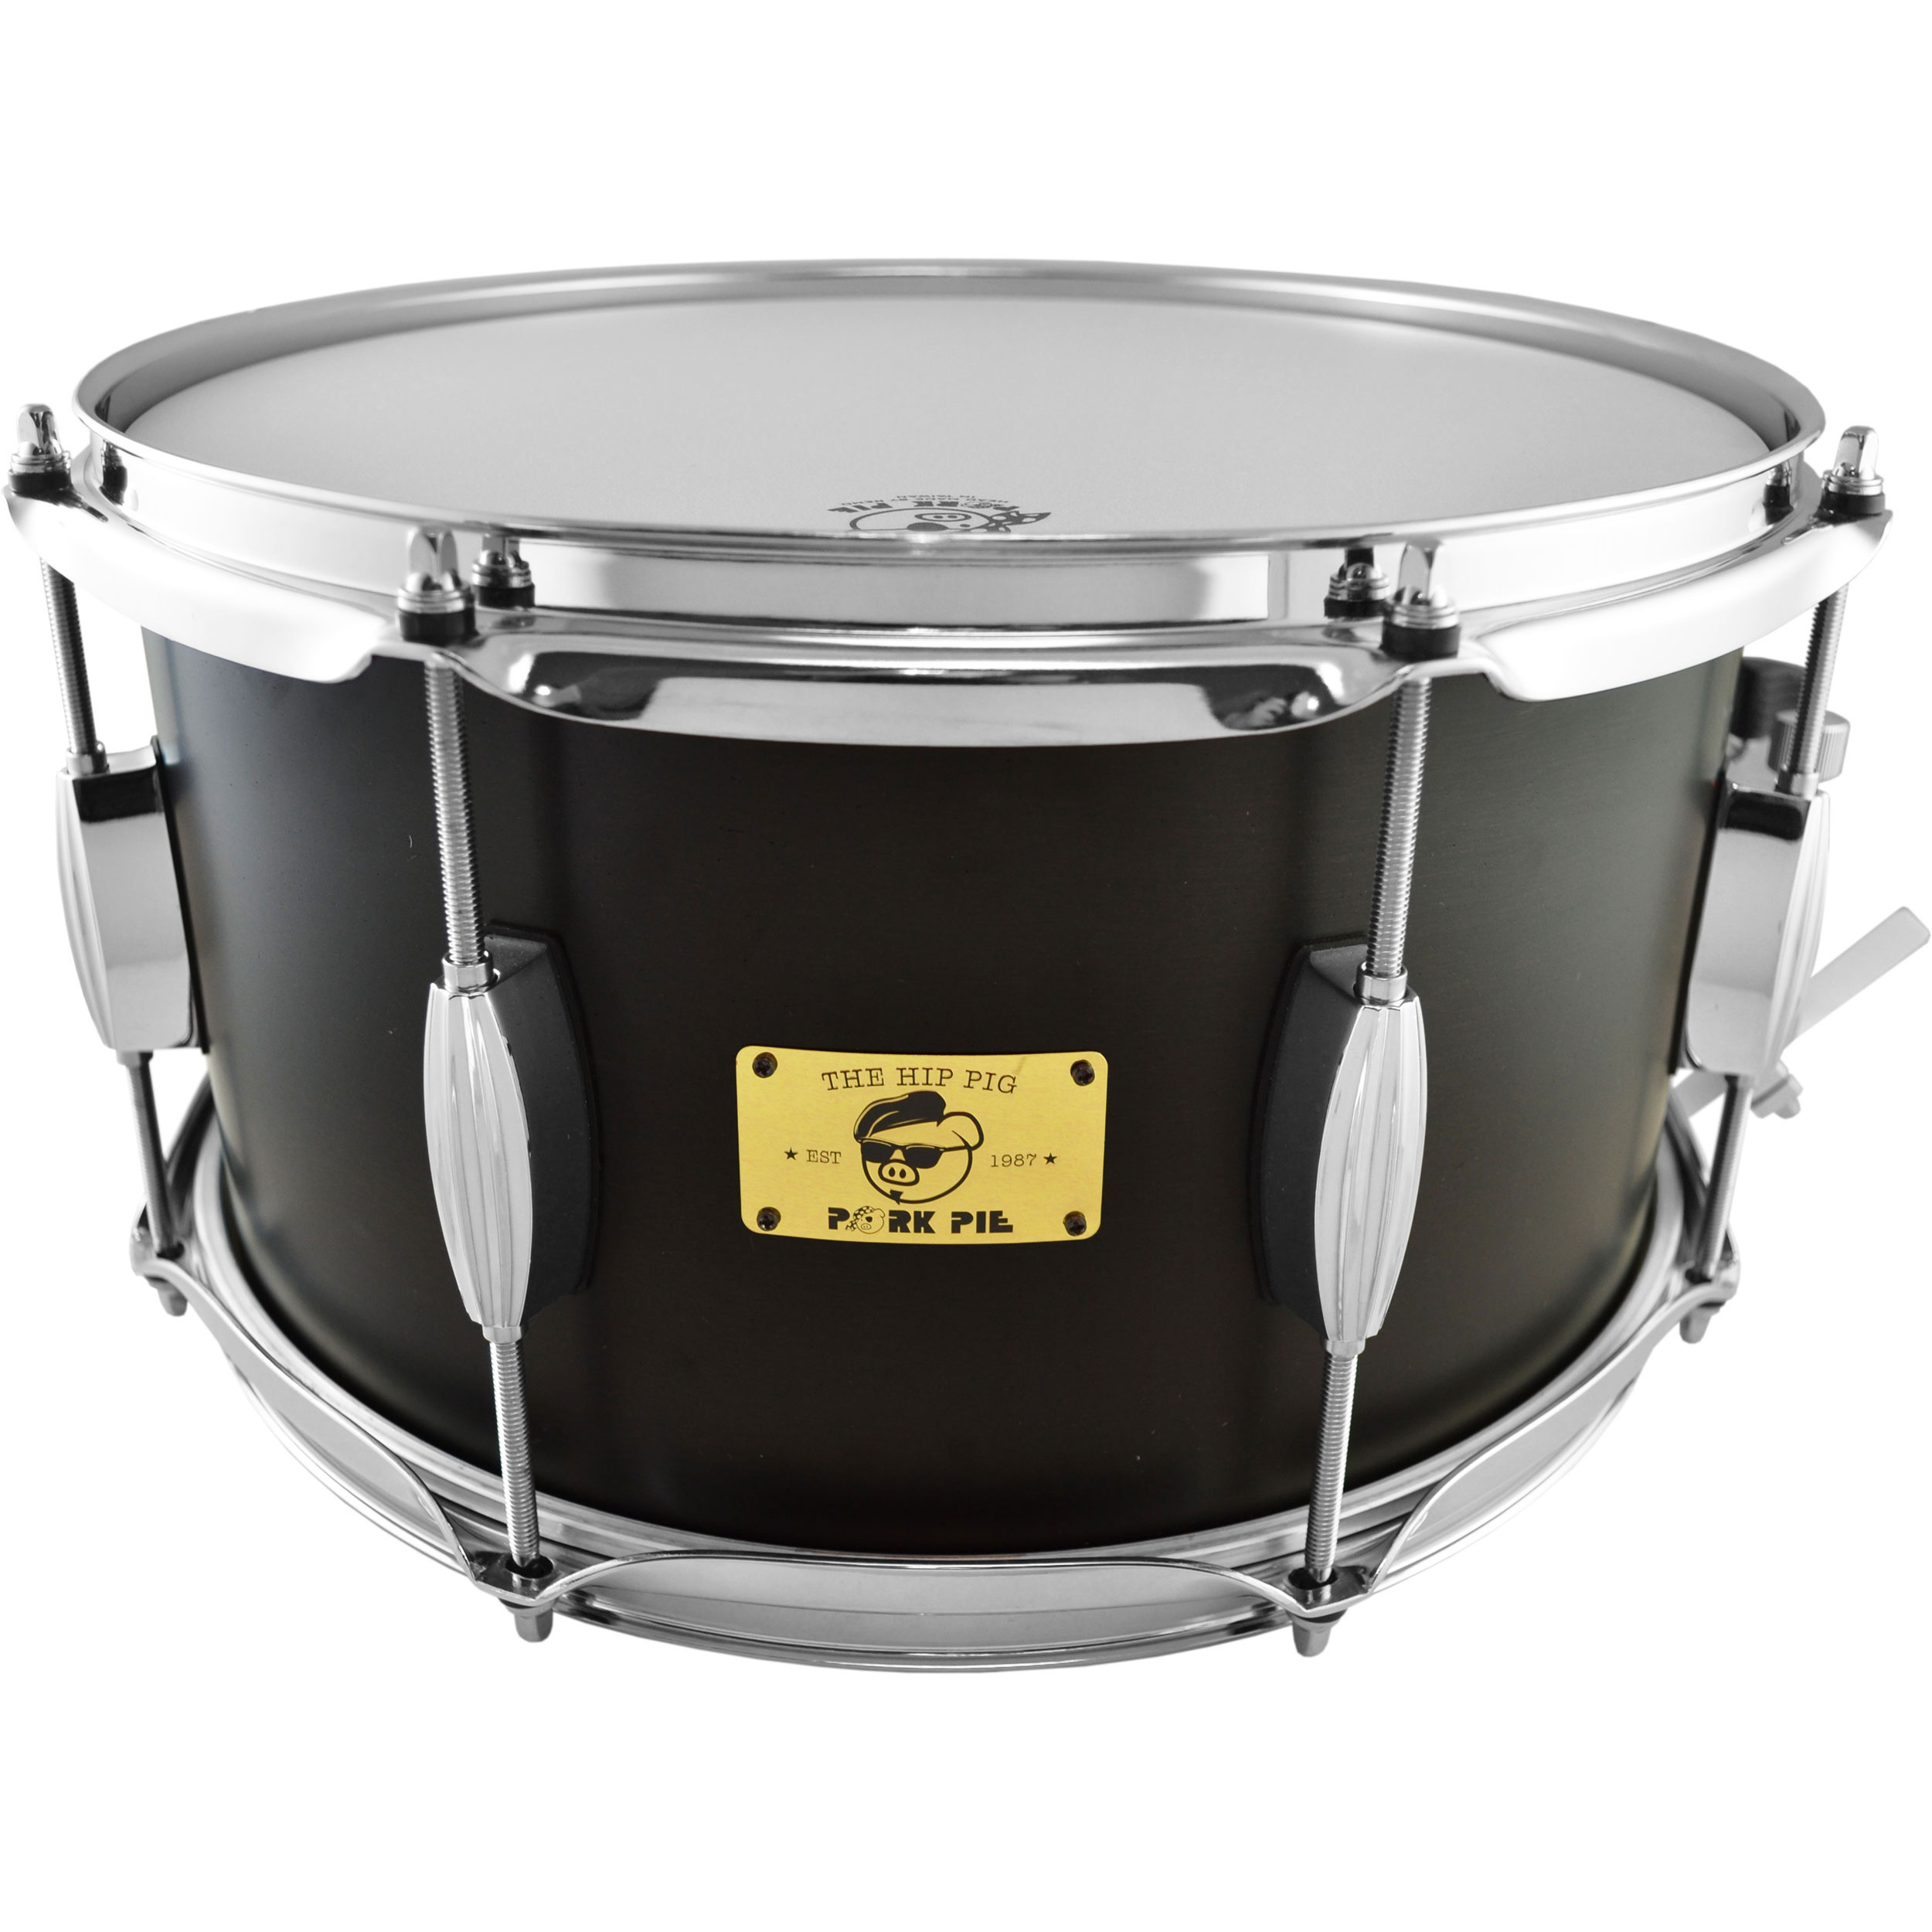 "Pork Pie Percussion 7"" x 13"" Hip Pig Snare Drum in Black Ebony Stain"